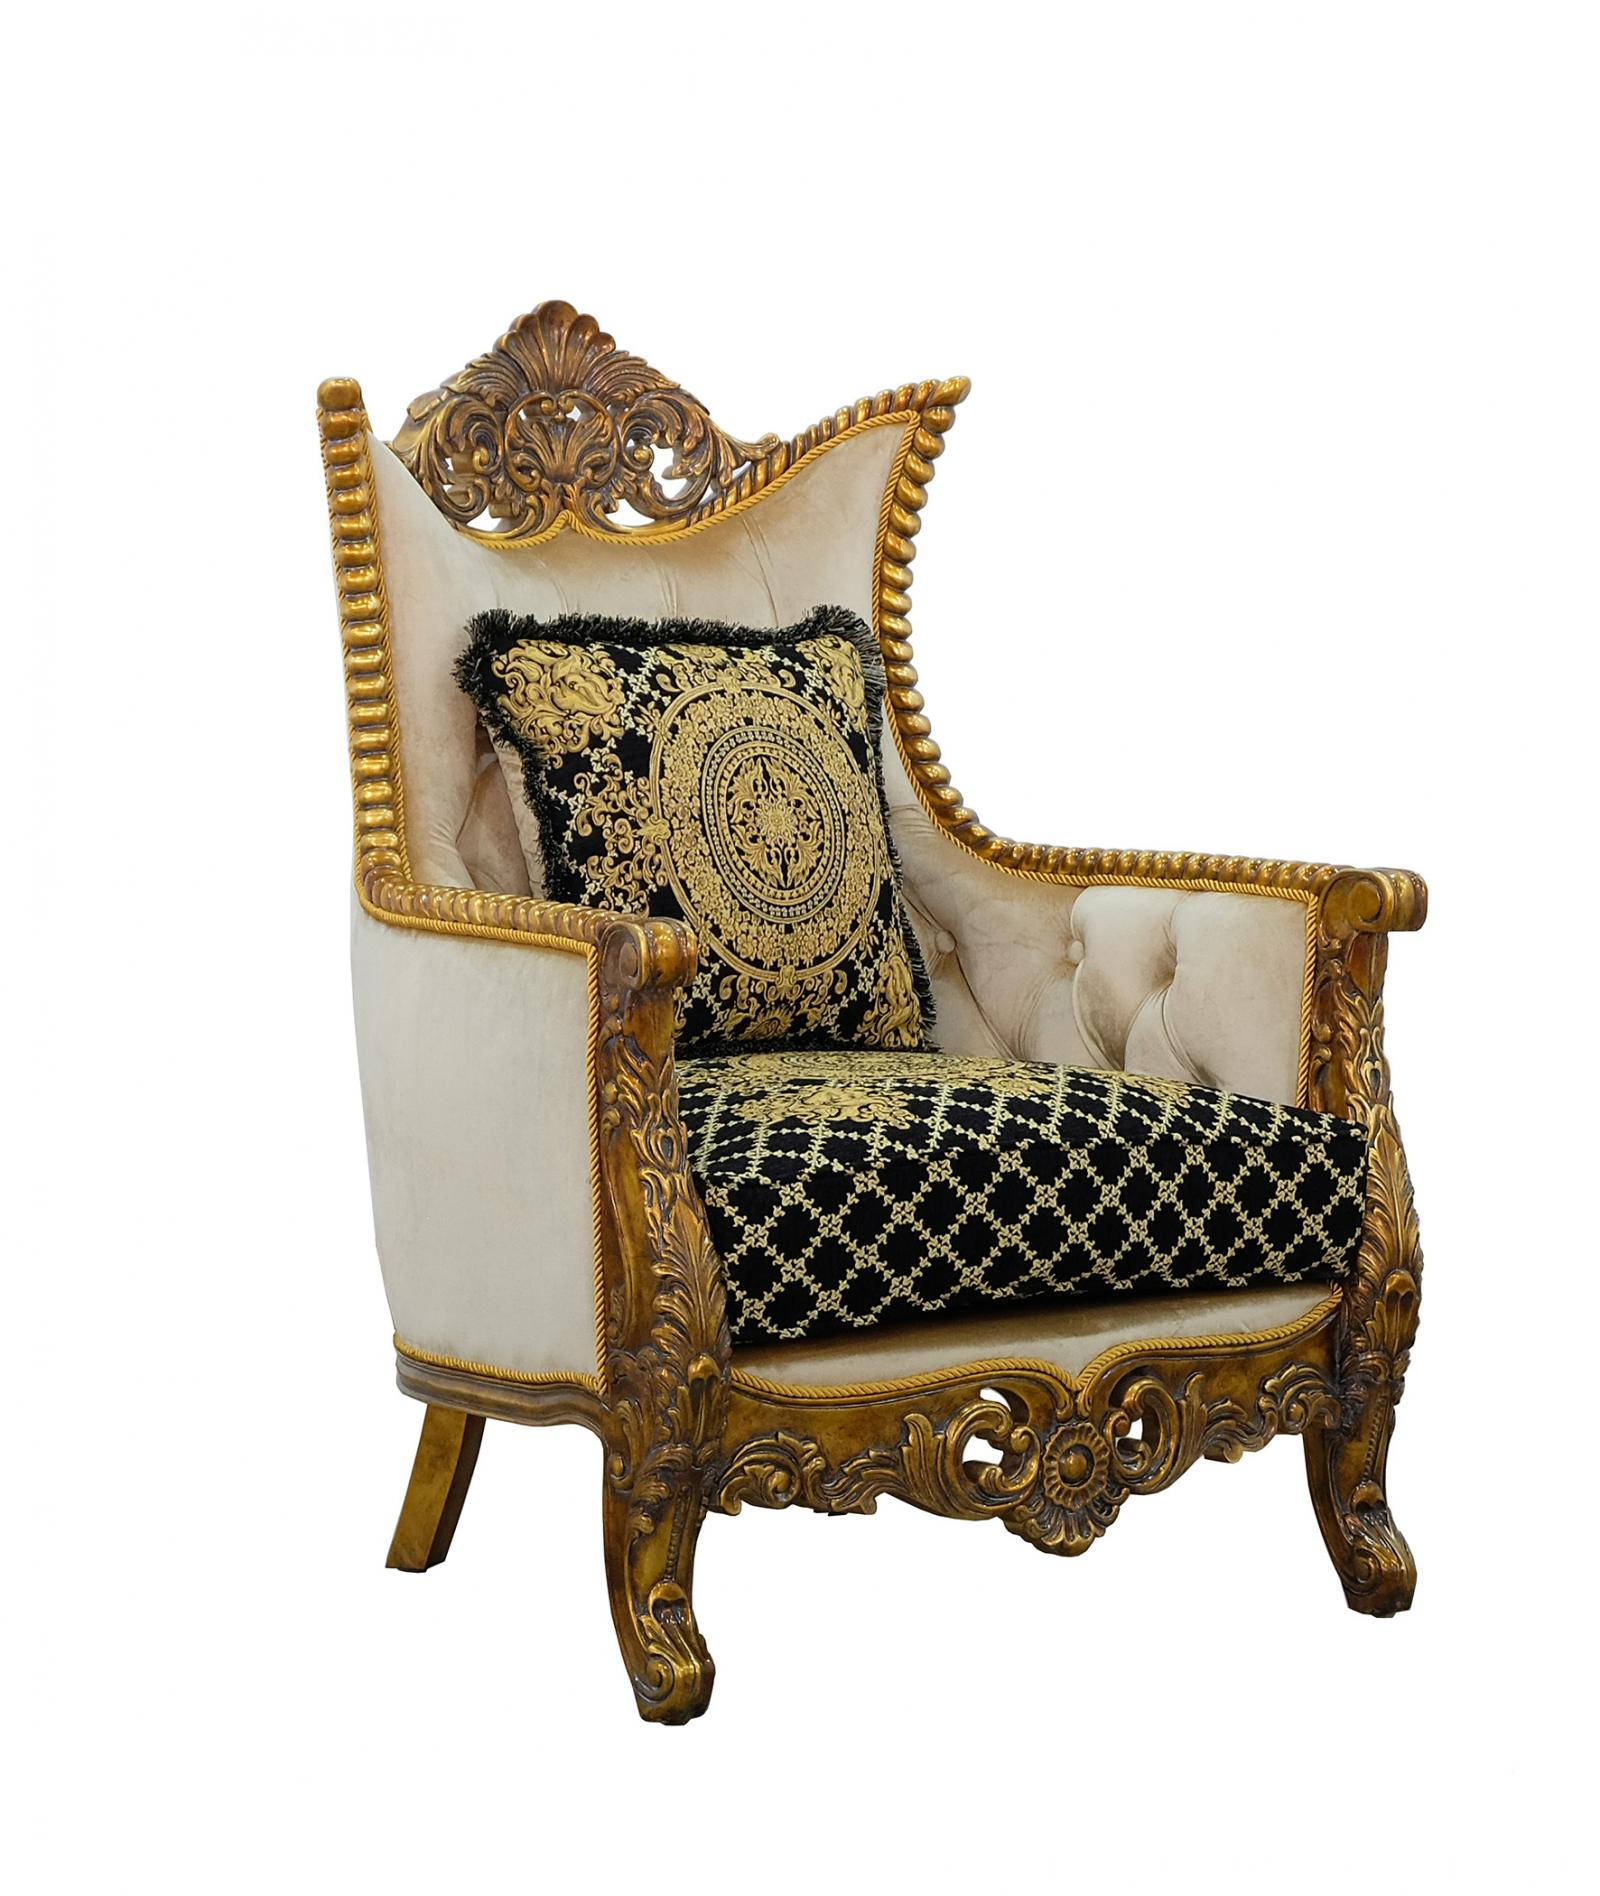 Classic  Traditional Beige  Gold  Antique   Black Wood  Solid Hardwood and Fabric Arm Chair EUROPEAN FURNITURE 31059-C